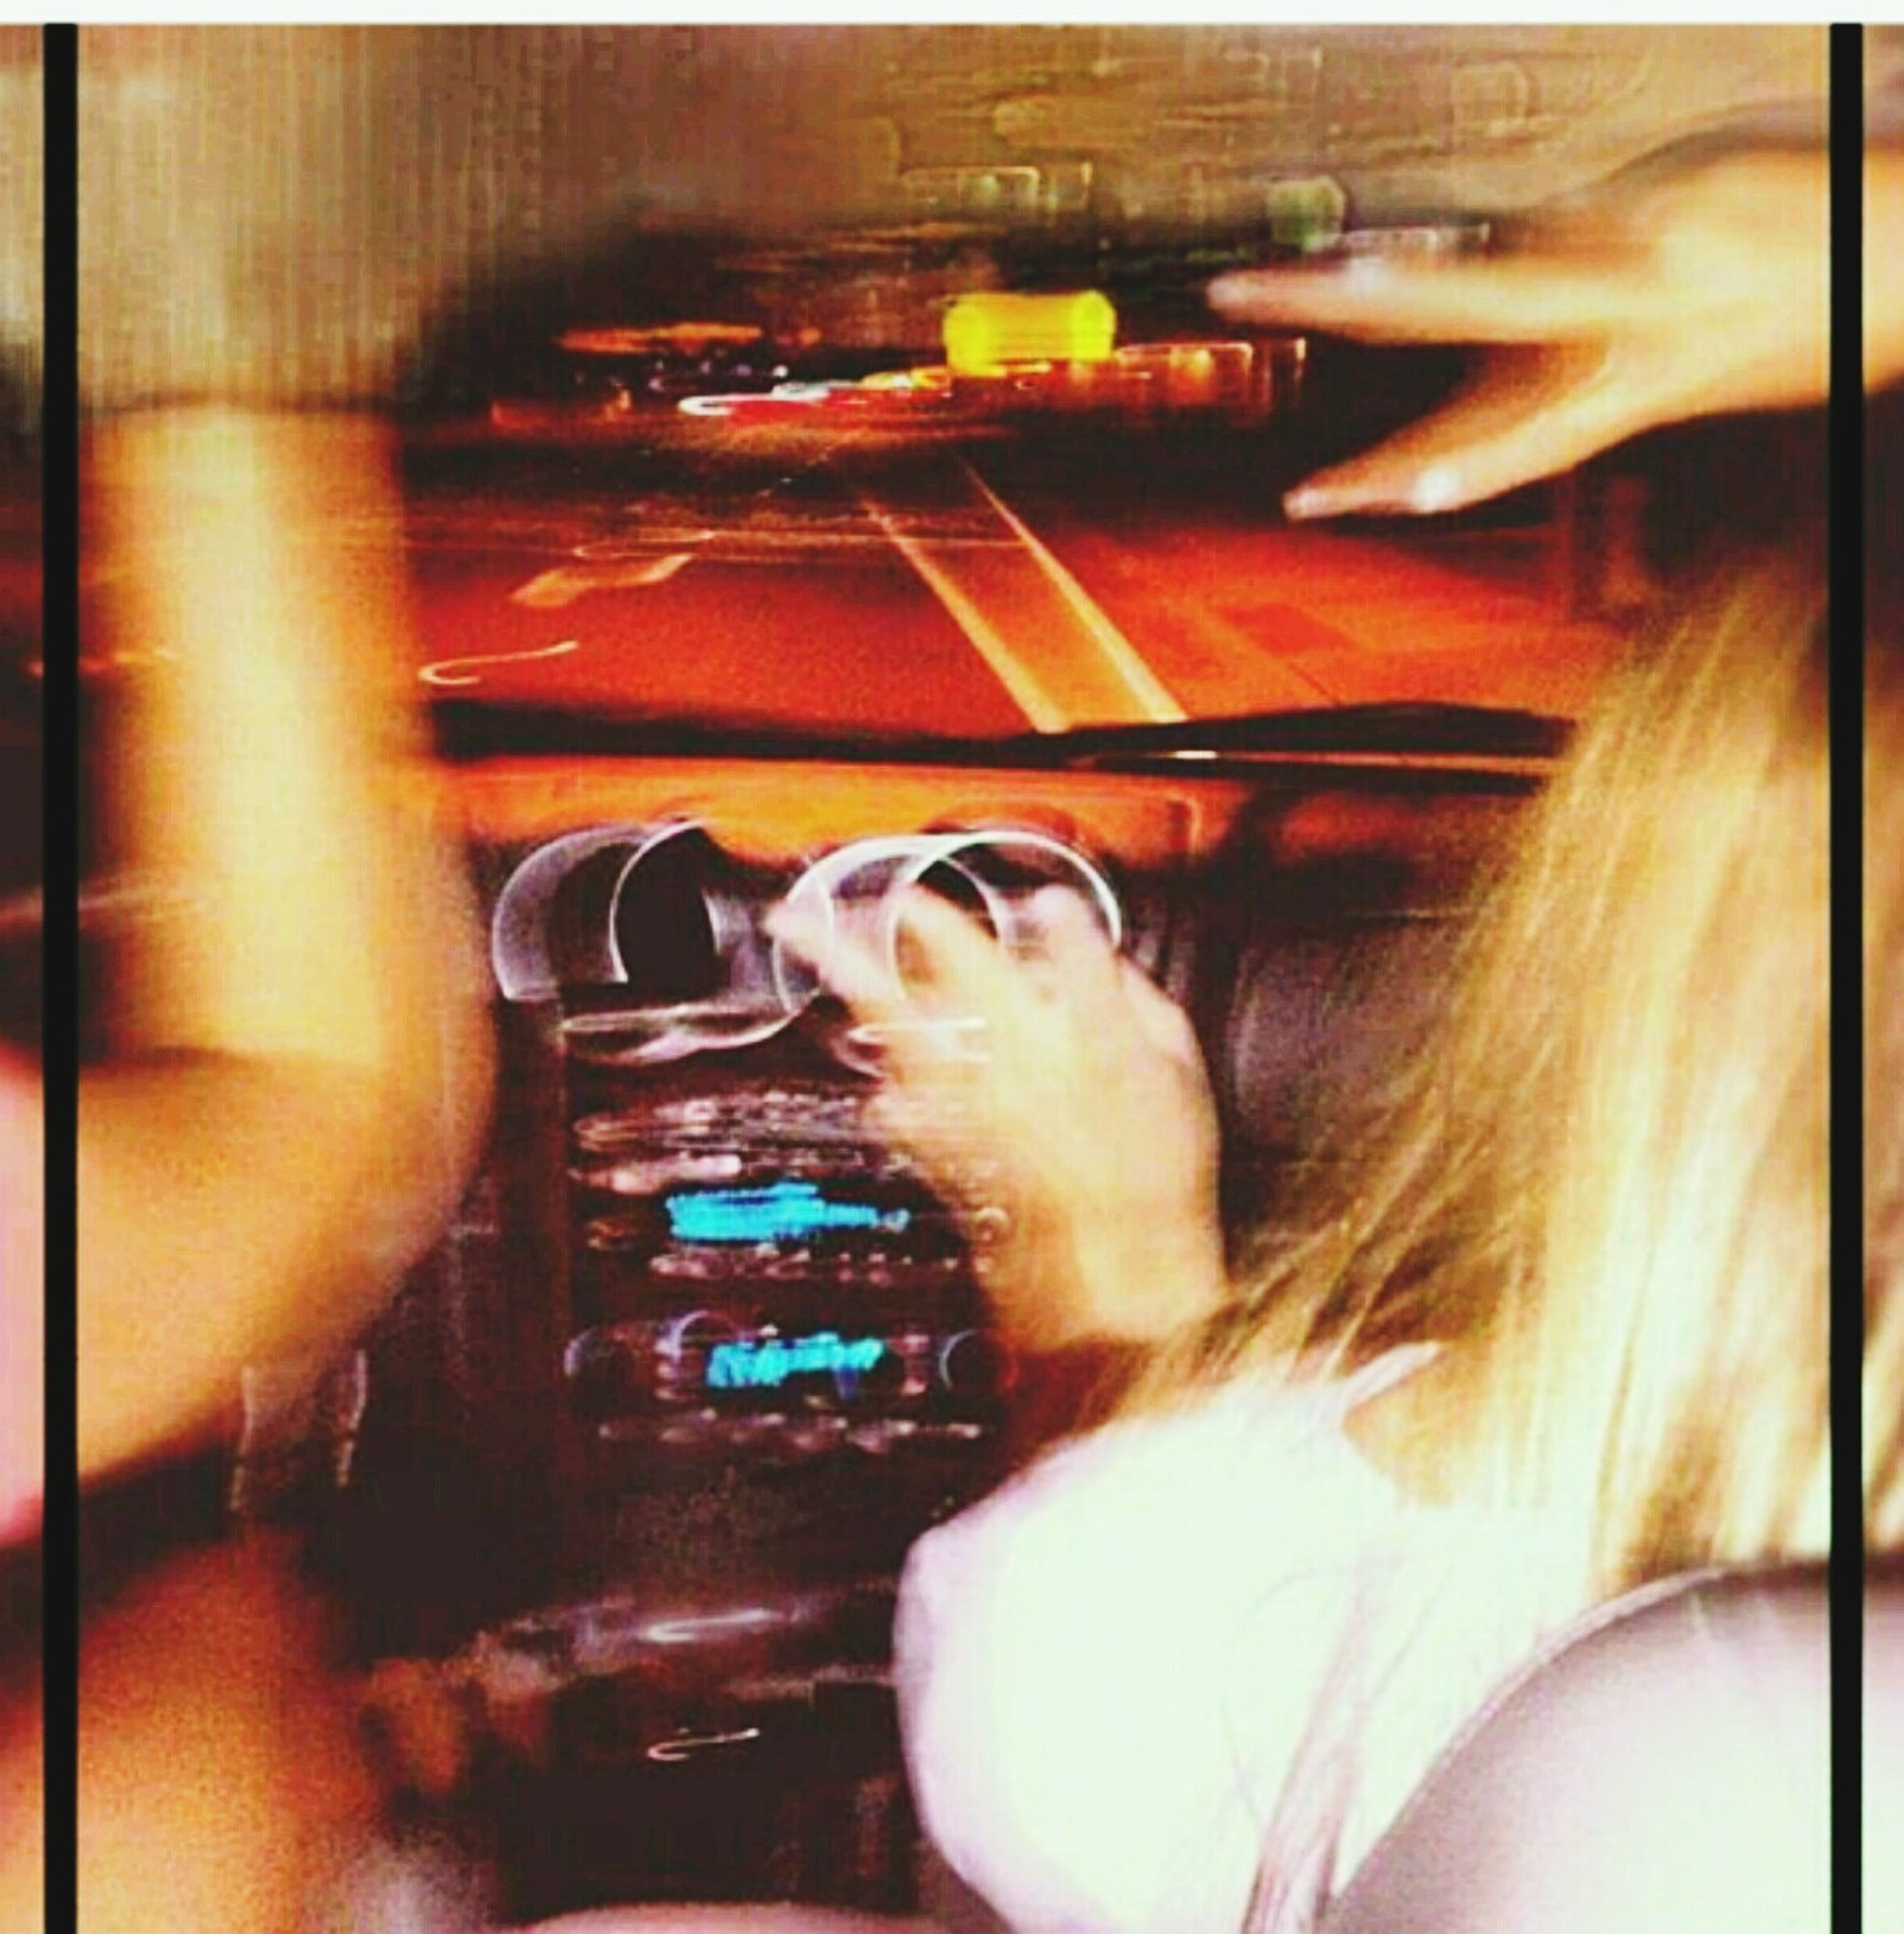 indoors, transportation, lifestyles, leisure activity, vehicle interior, car, part of, mode of transport, blurred motion, person, land vehicle, reflection, auto post production filter, transfer print, motion, travel